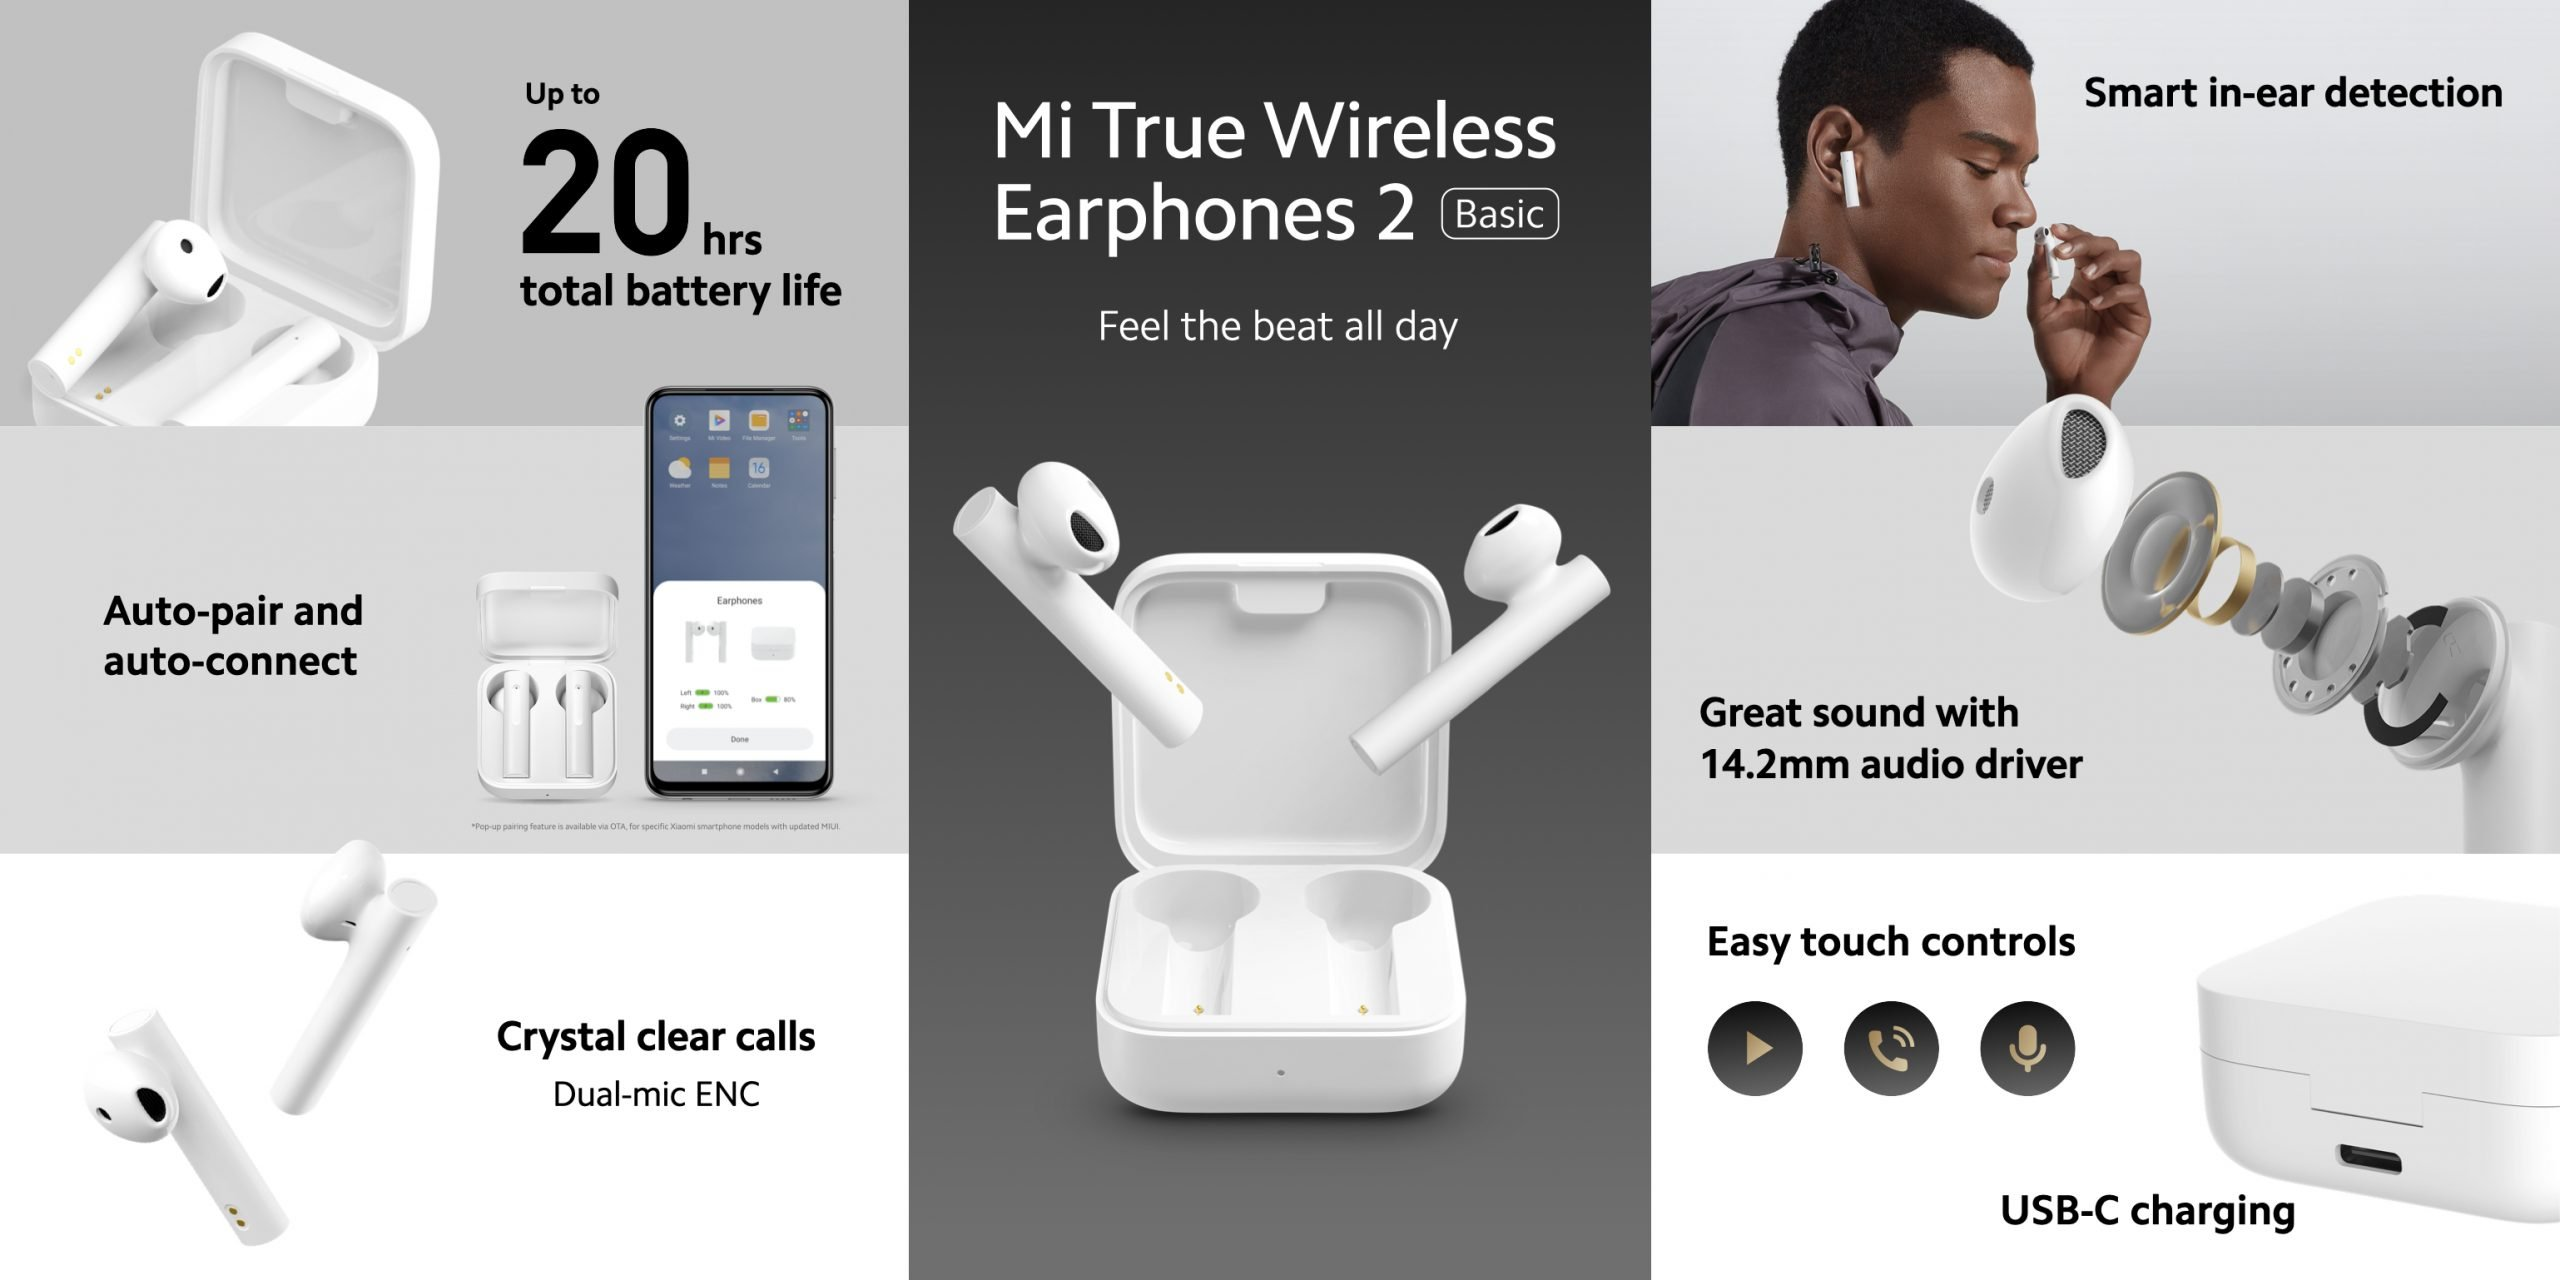 auriculares inalámbricos Xiaomi Mi True Wireless Earphones 2 Basic. Noticias Xiaomi Adictos